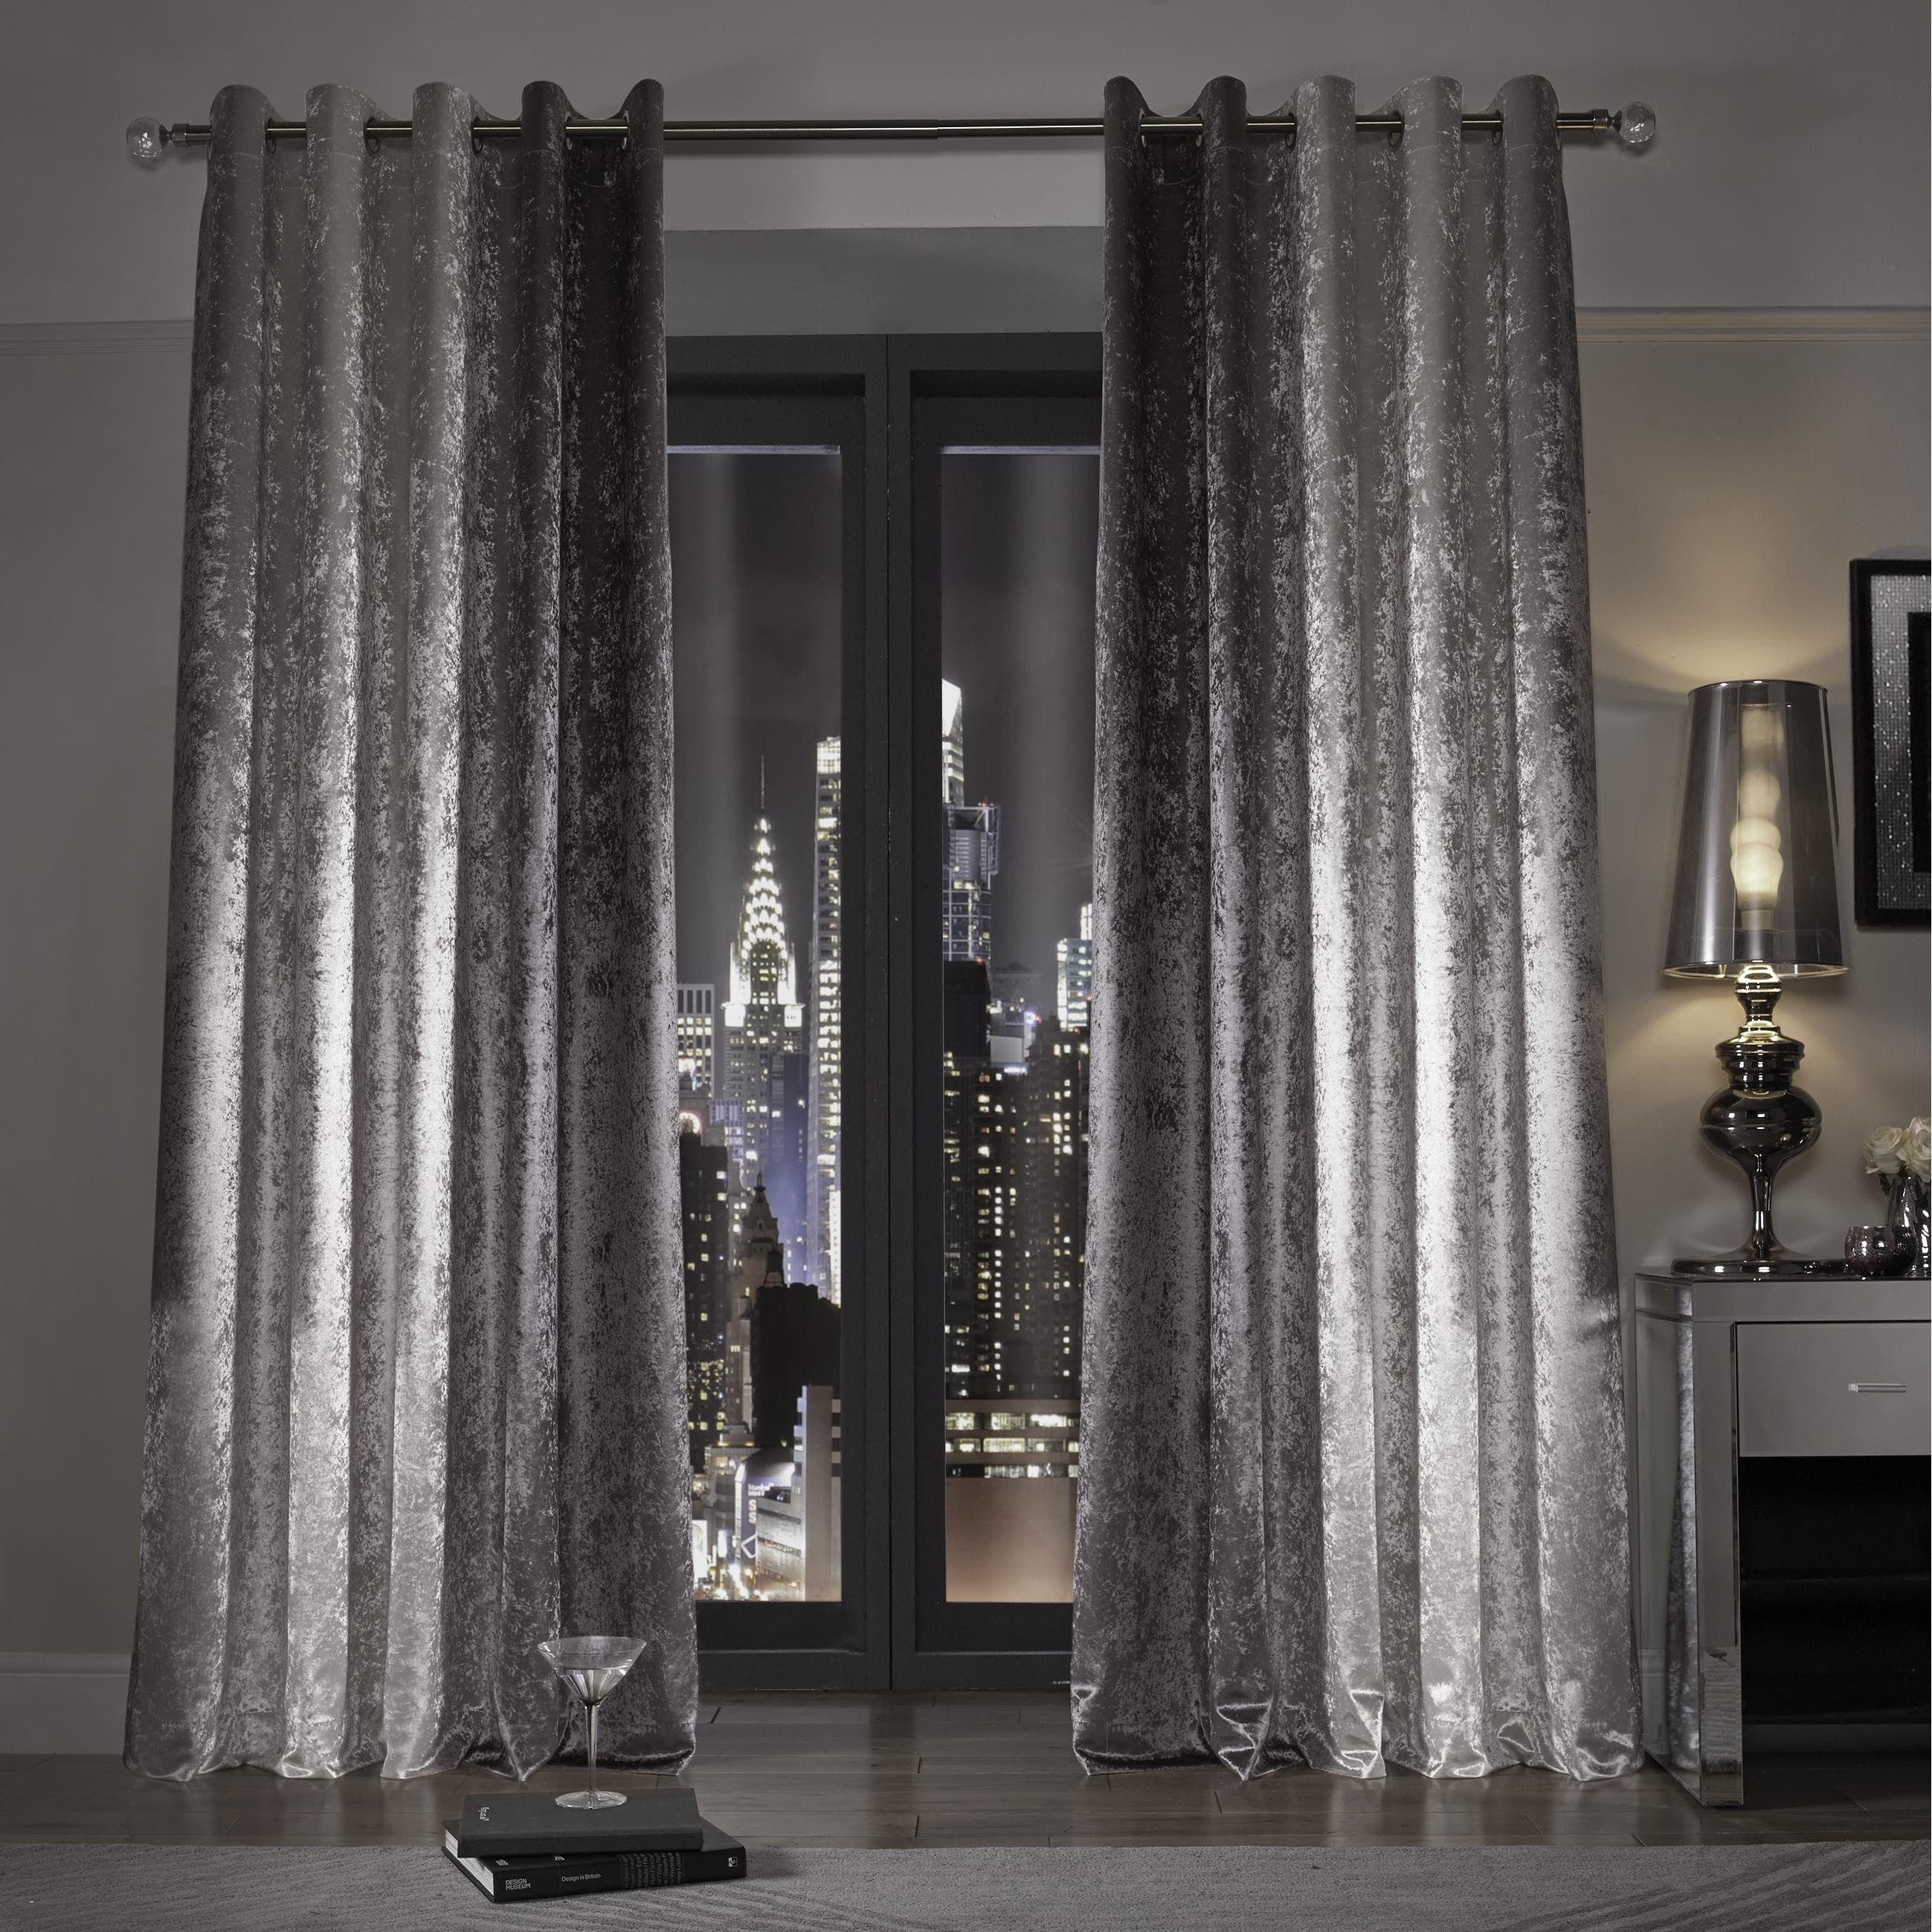 Grey Curtains for Bedroom Fresh 21 Amazing Window Sill Vases